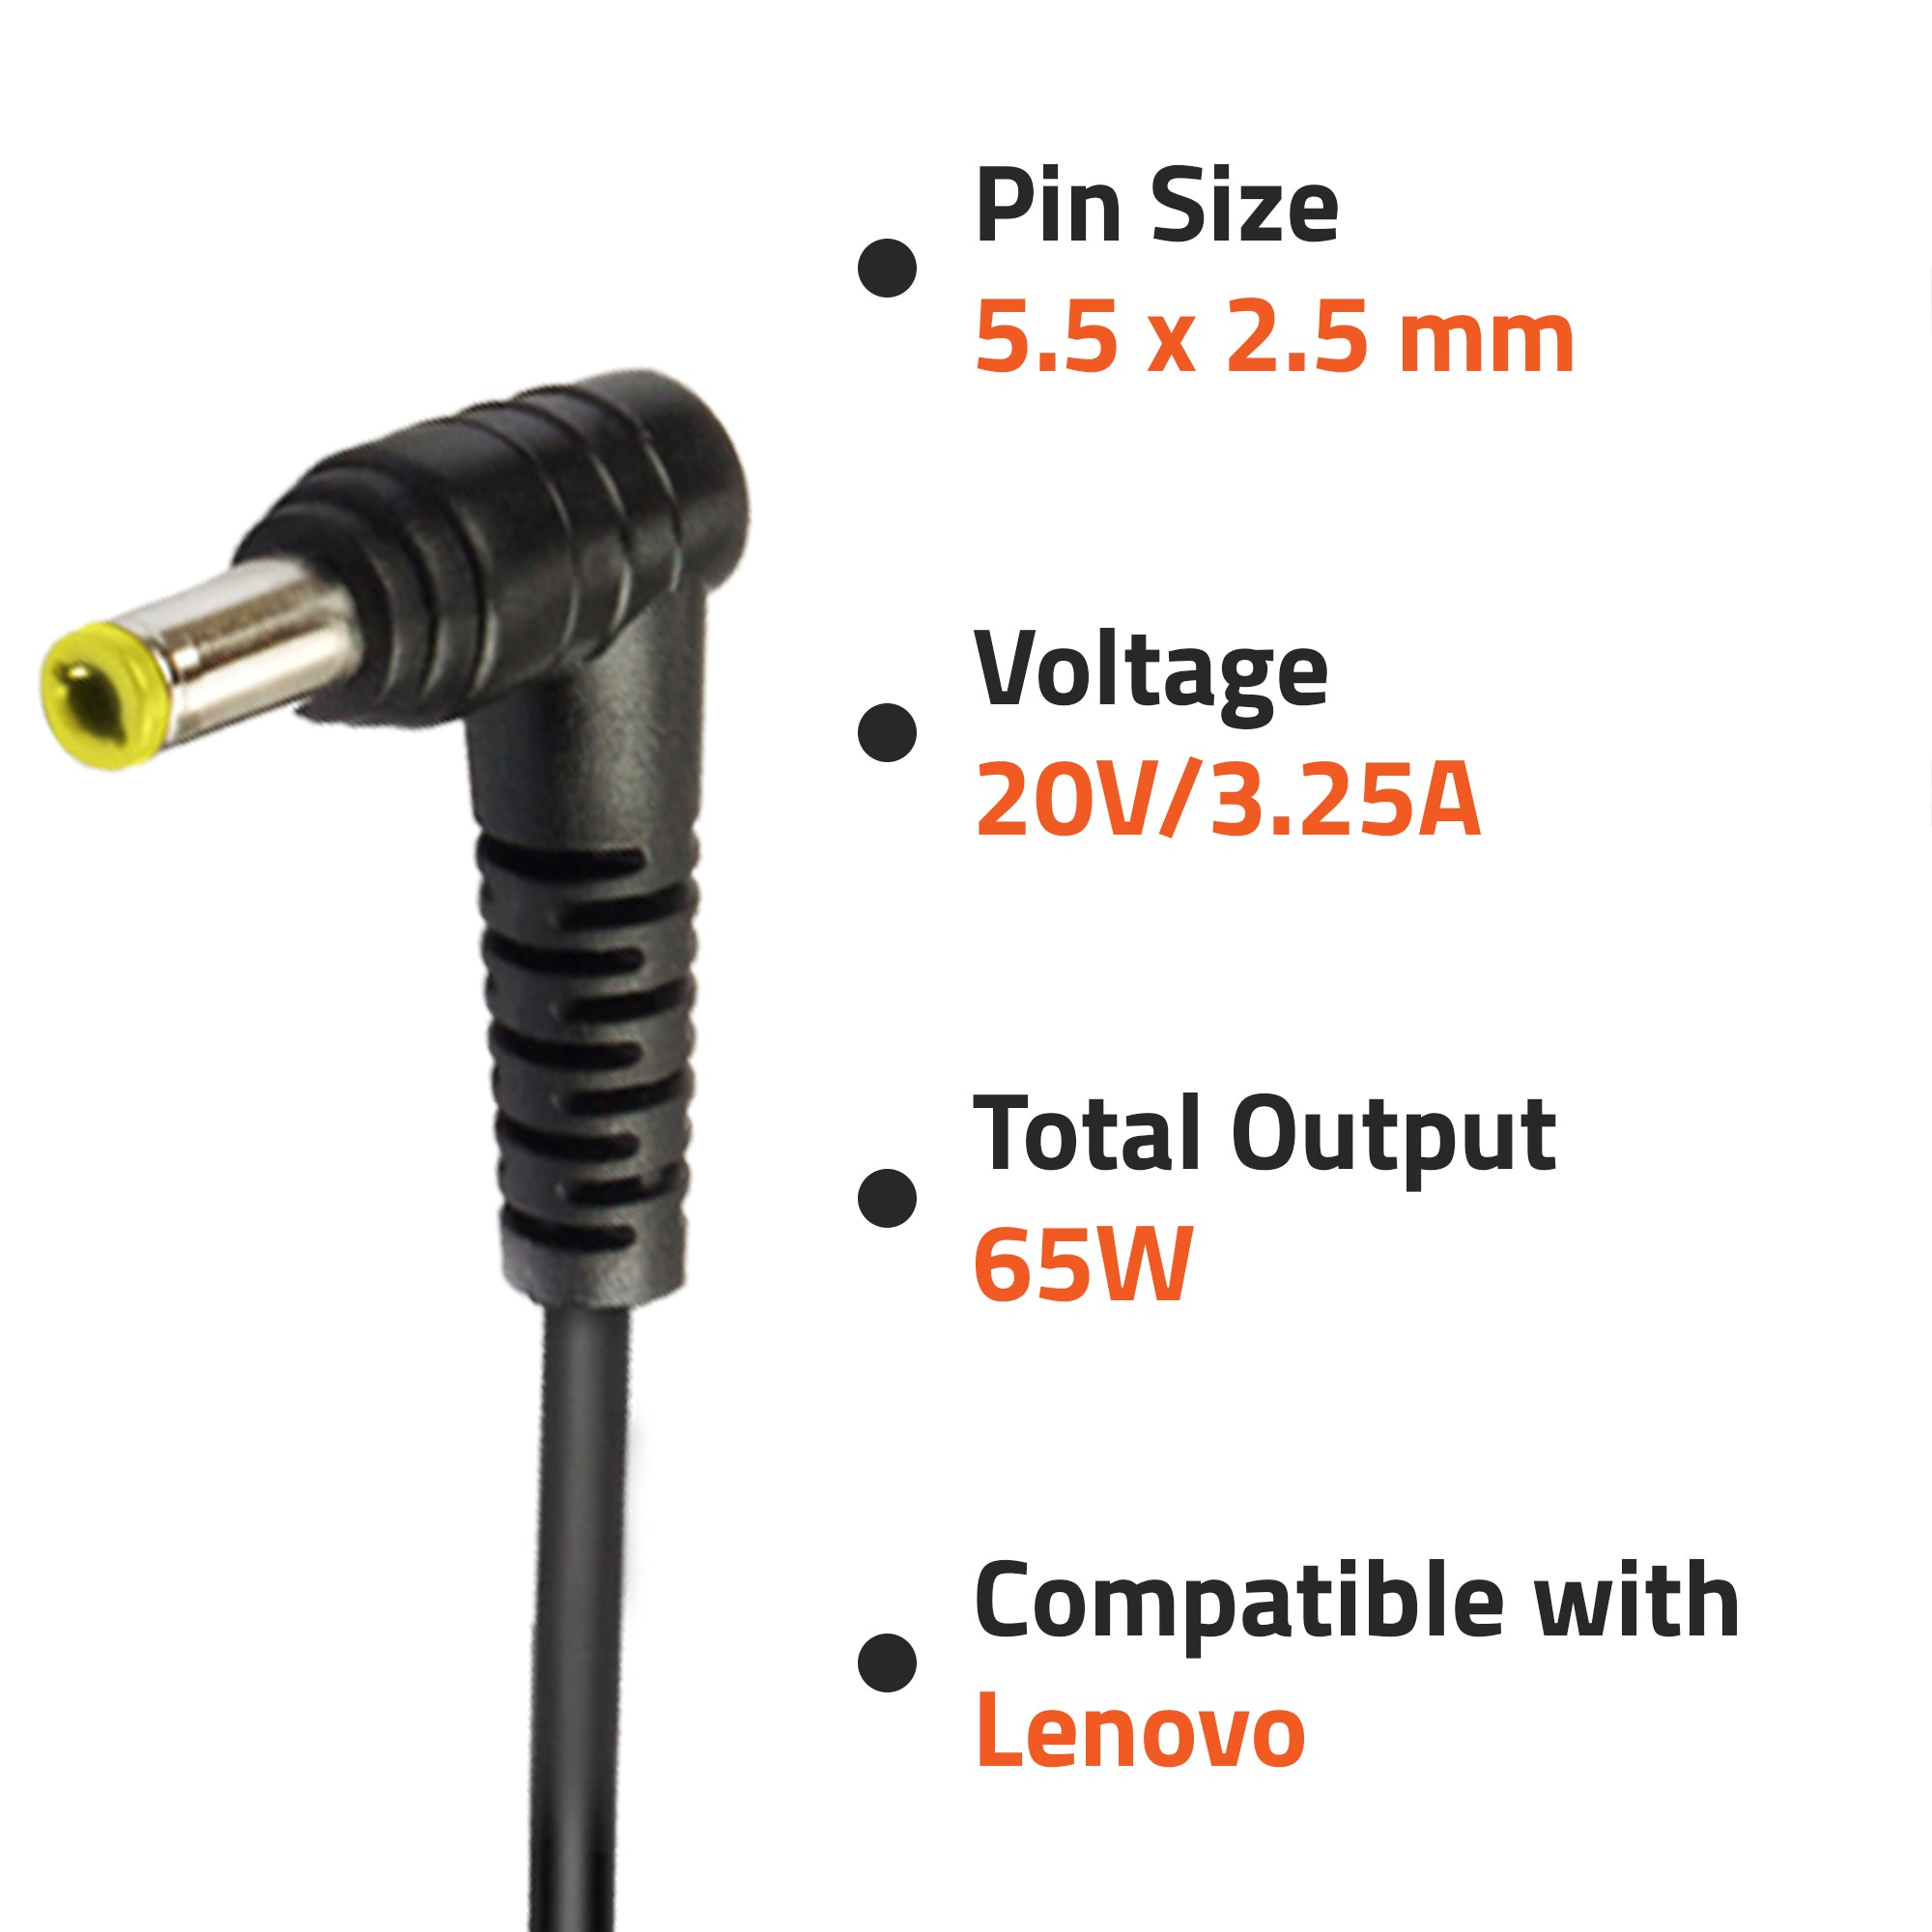 Artis 65W Lenovo Compatible Laptop Adopter with Power Cord (20V/3.25A, 65Watt) (Pin Size: 5.5mm x 2.5mm) (BIS Certified)